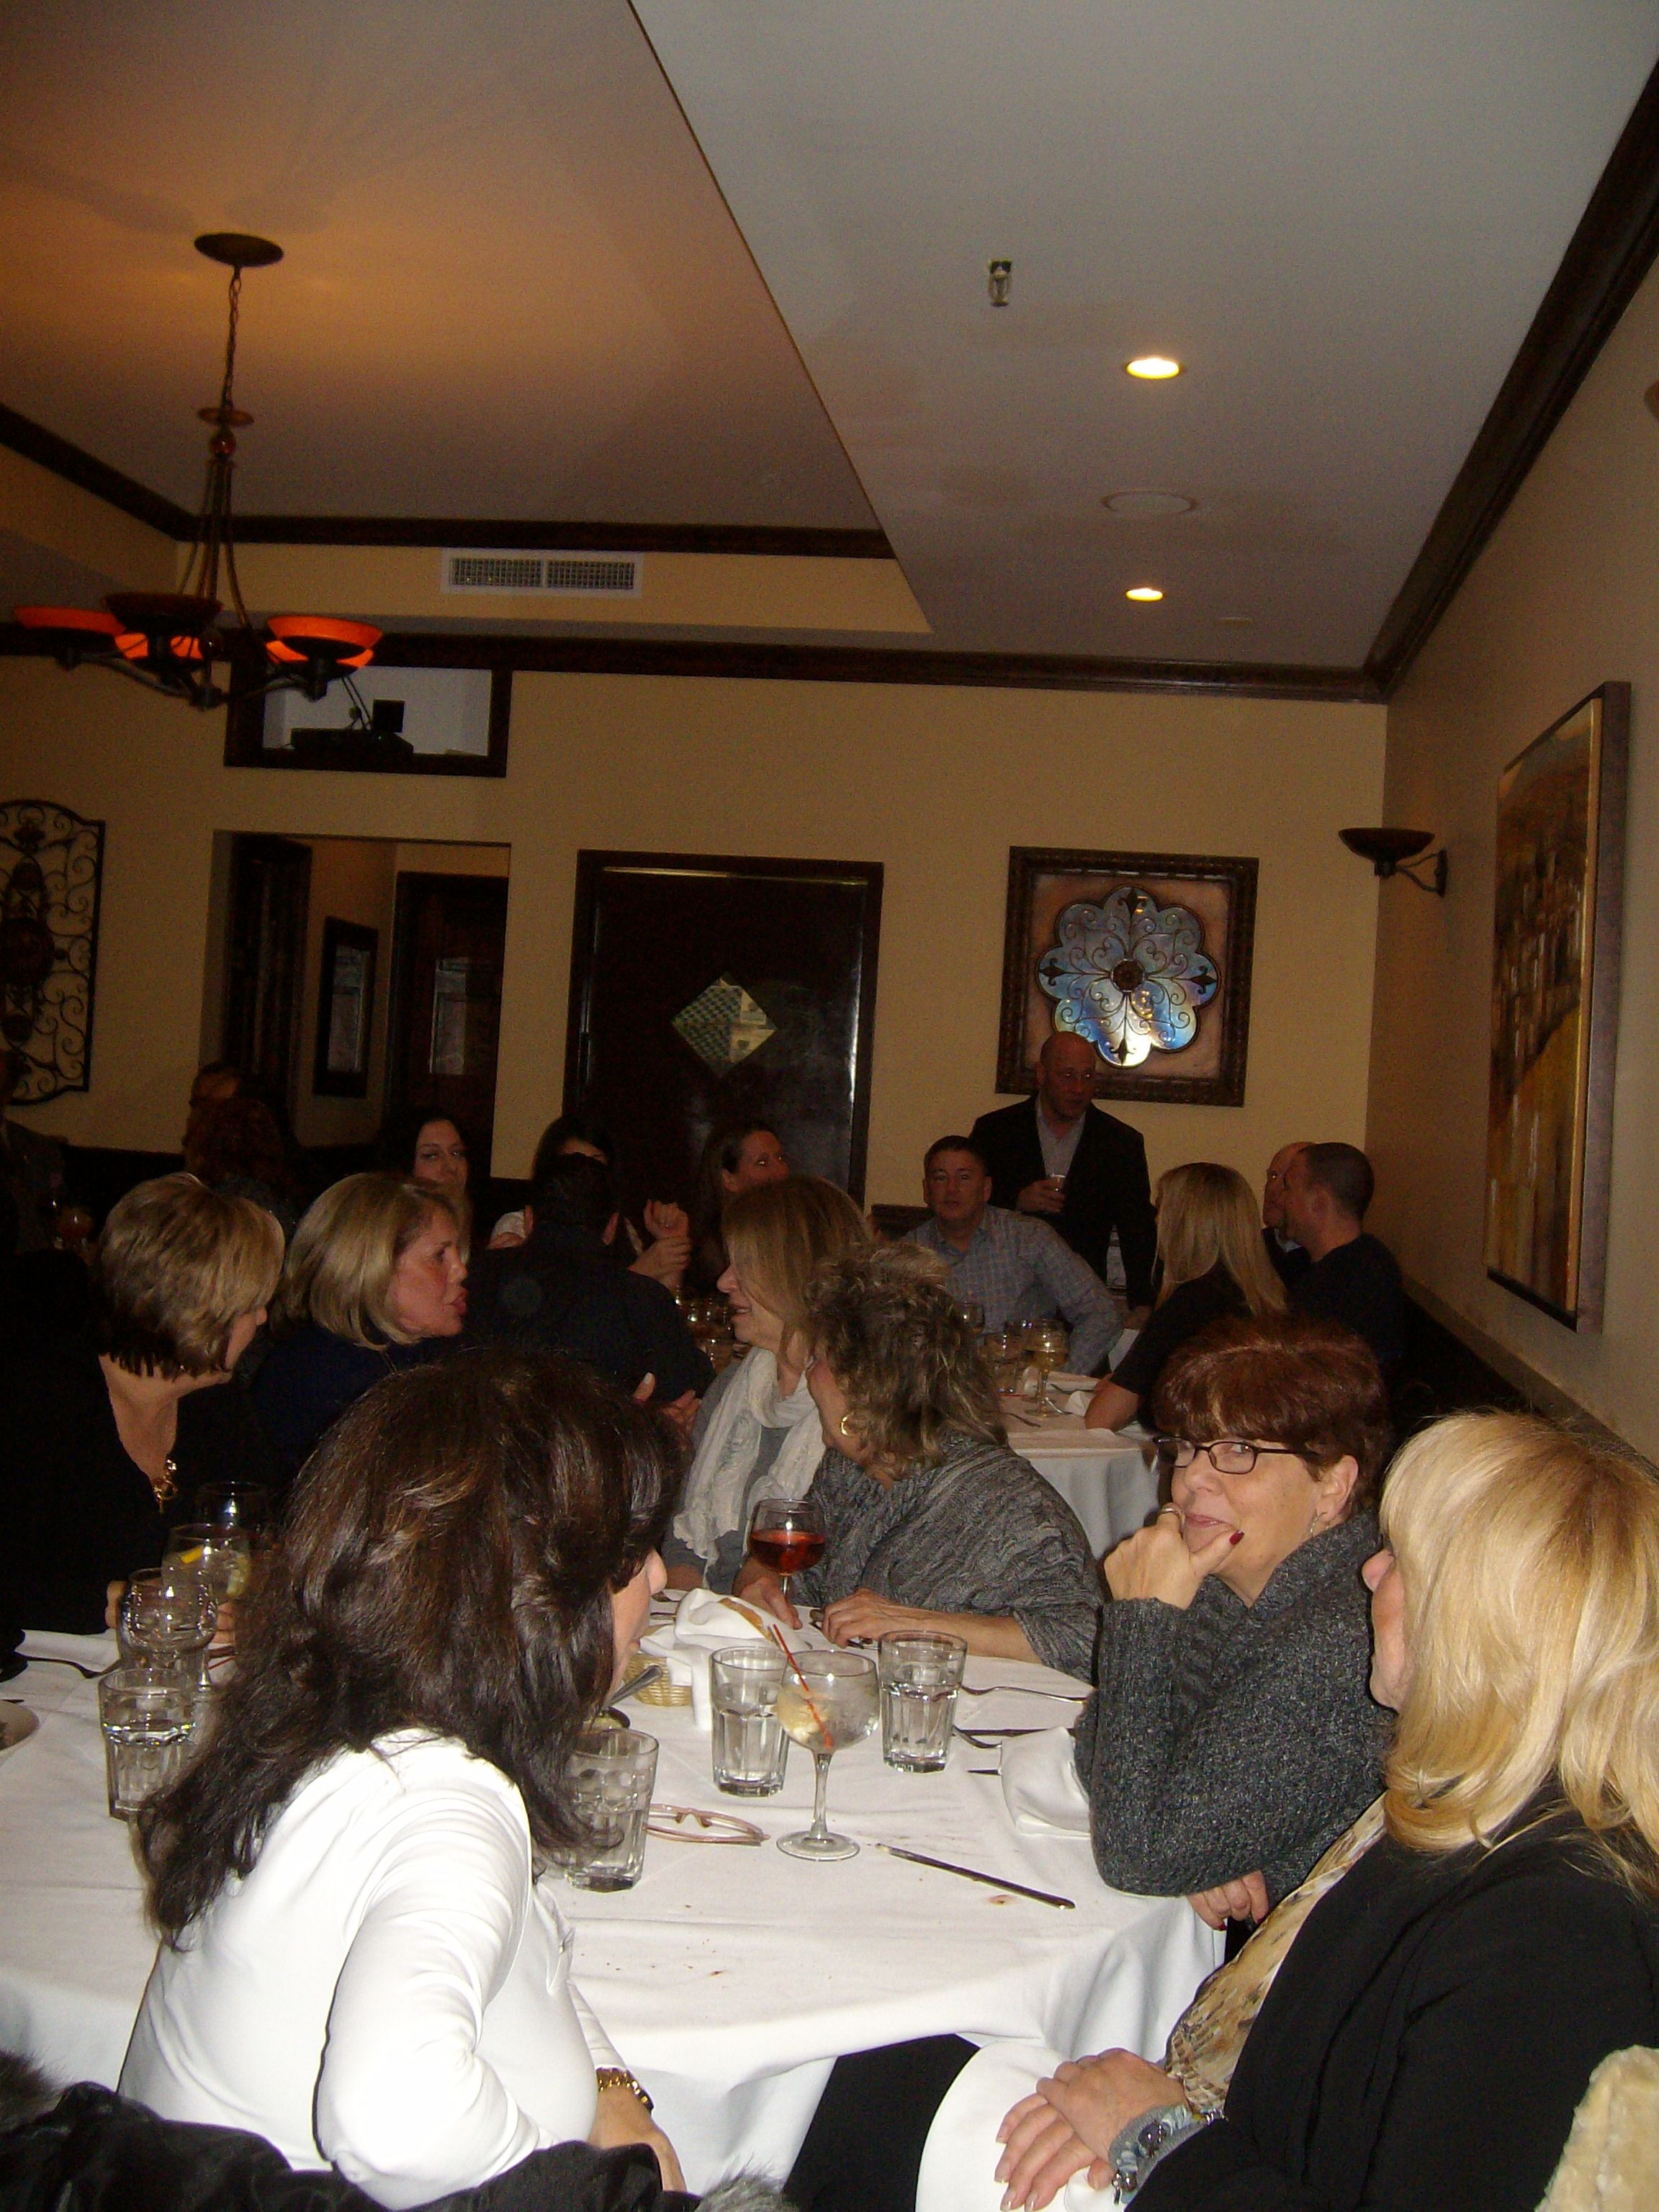 Spolini S Restaurant In Queens Ny Party Room Seats 90 For Showers Birthdays Communions Confirmations Graduations Corporate Meetings Etc